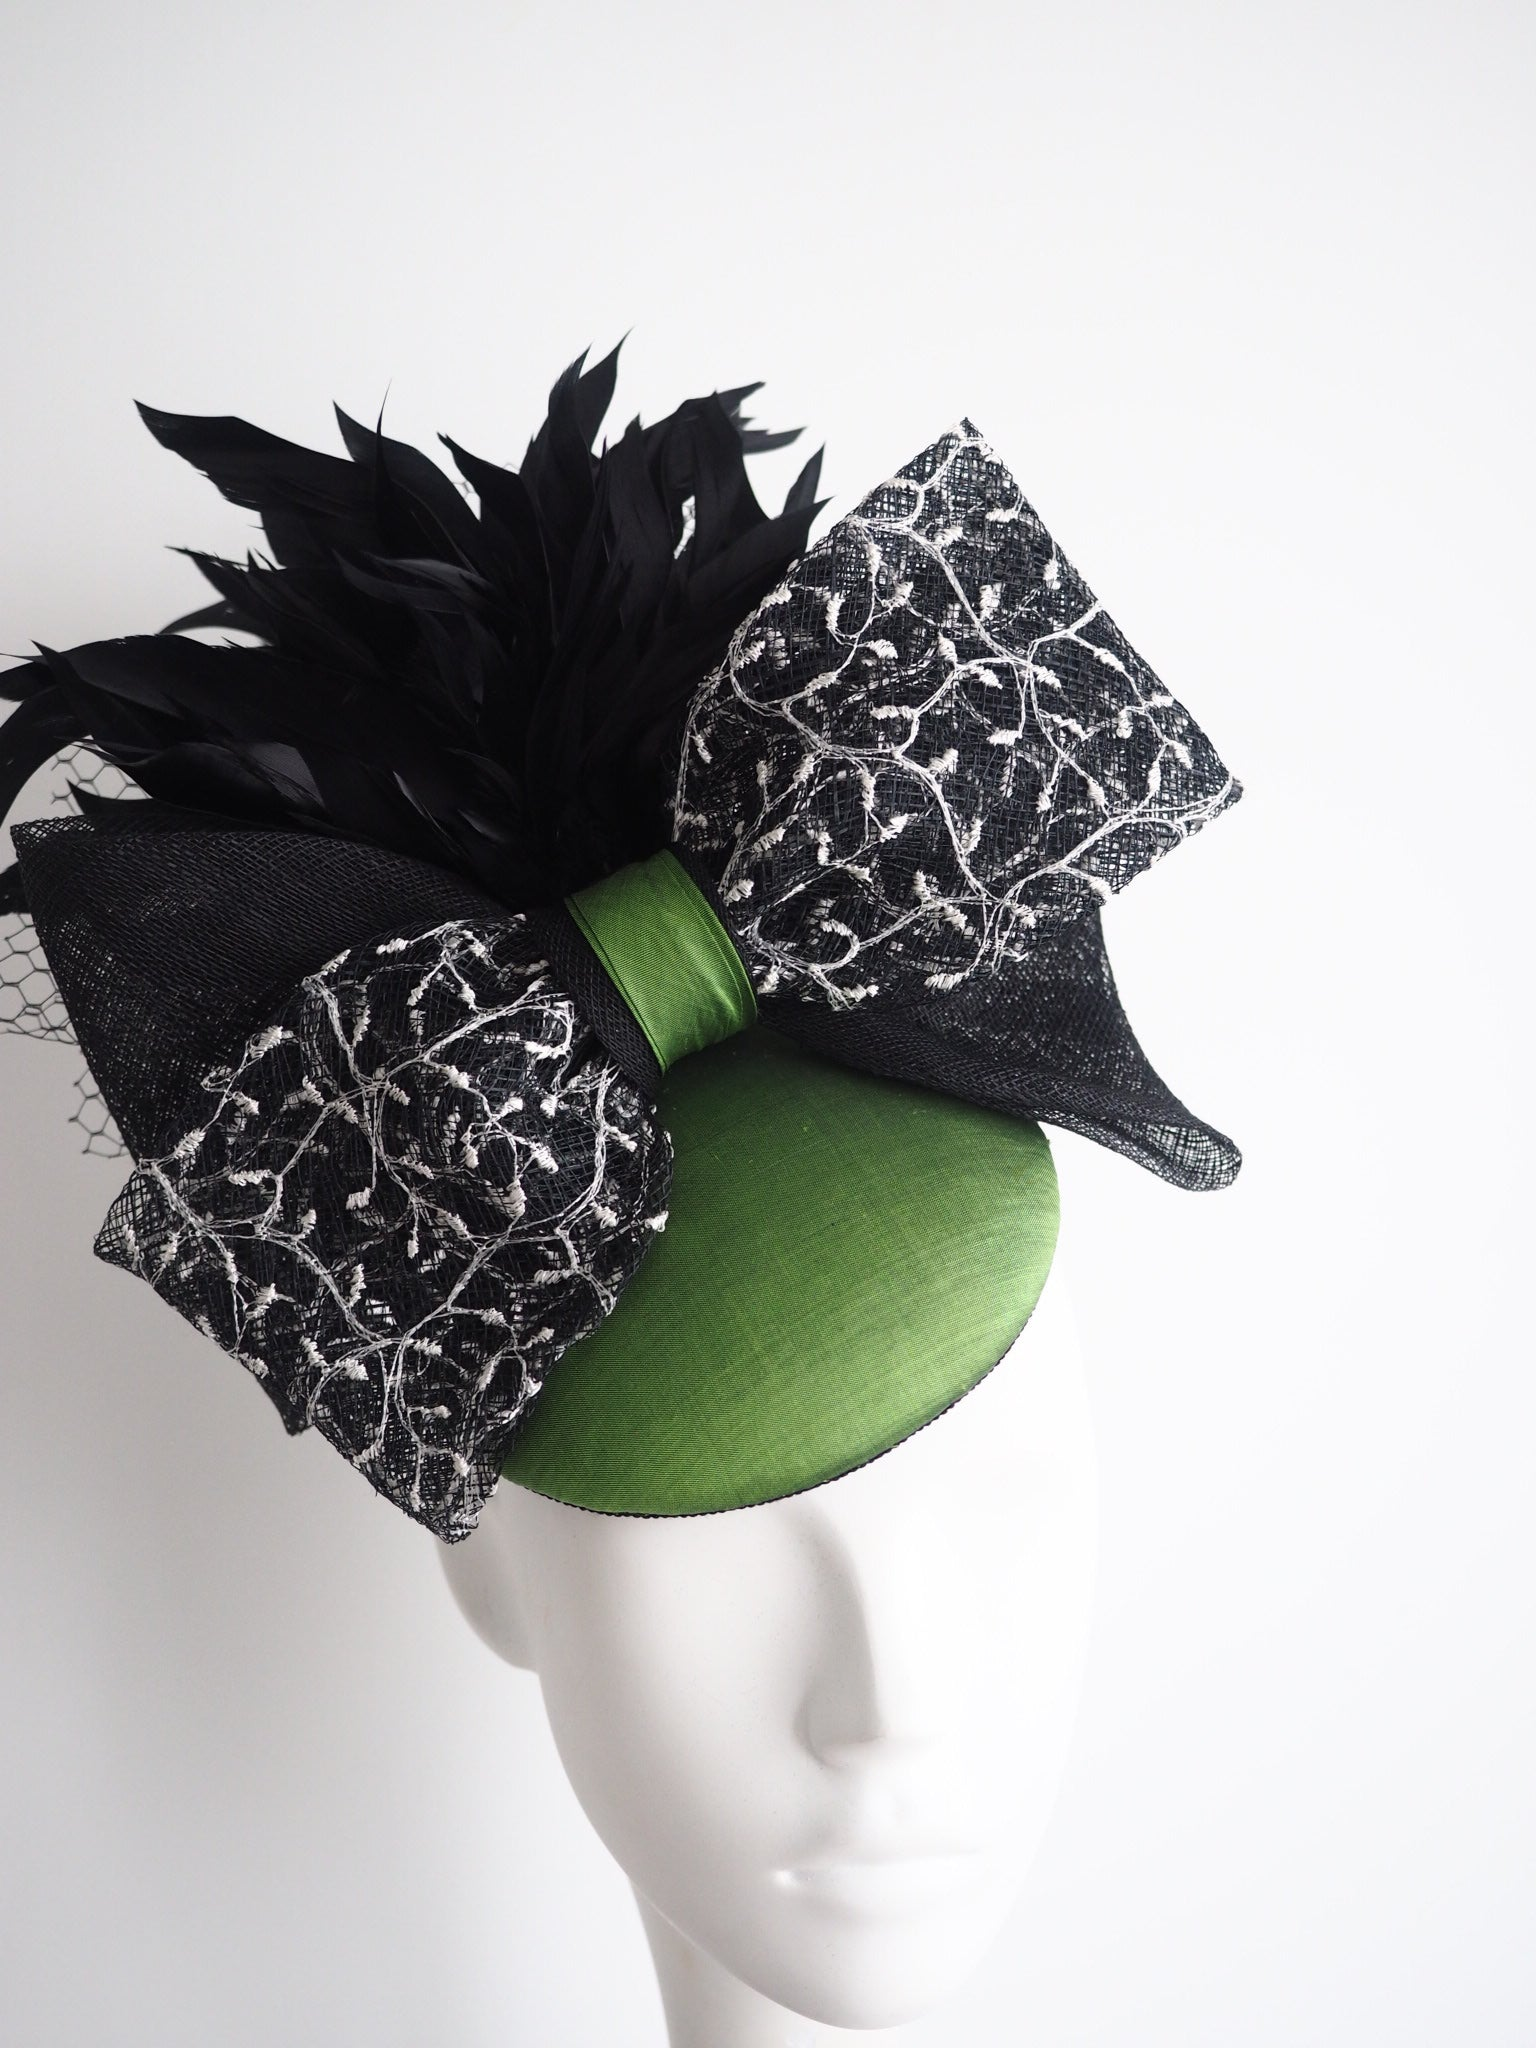 Clover - Green silk hat with black feathers and large bow - NOELEEN MILLINERY HONG KONG